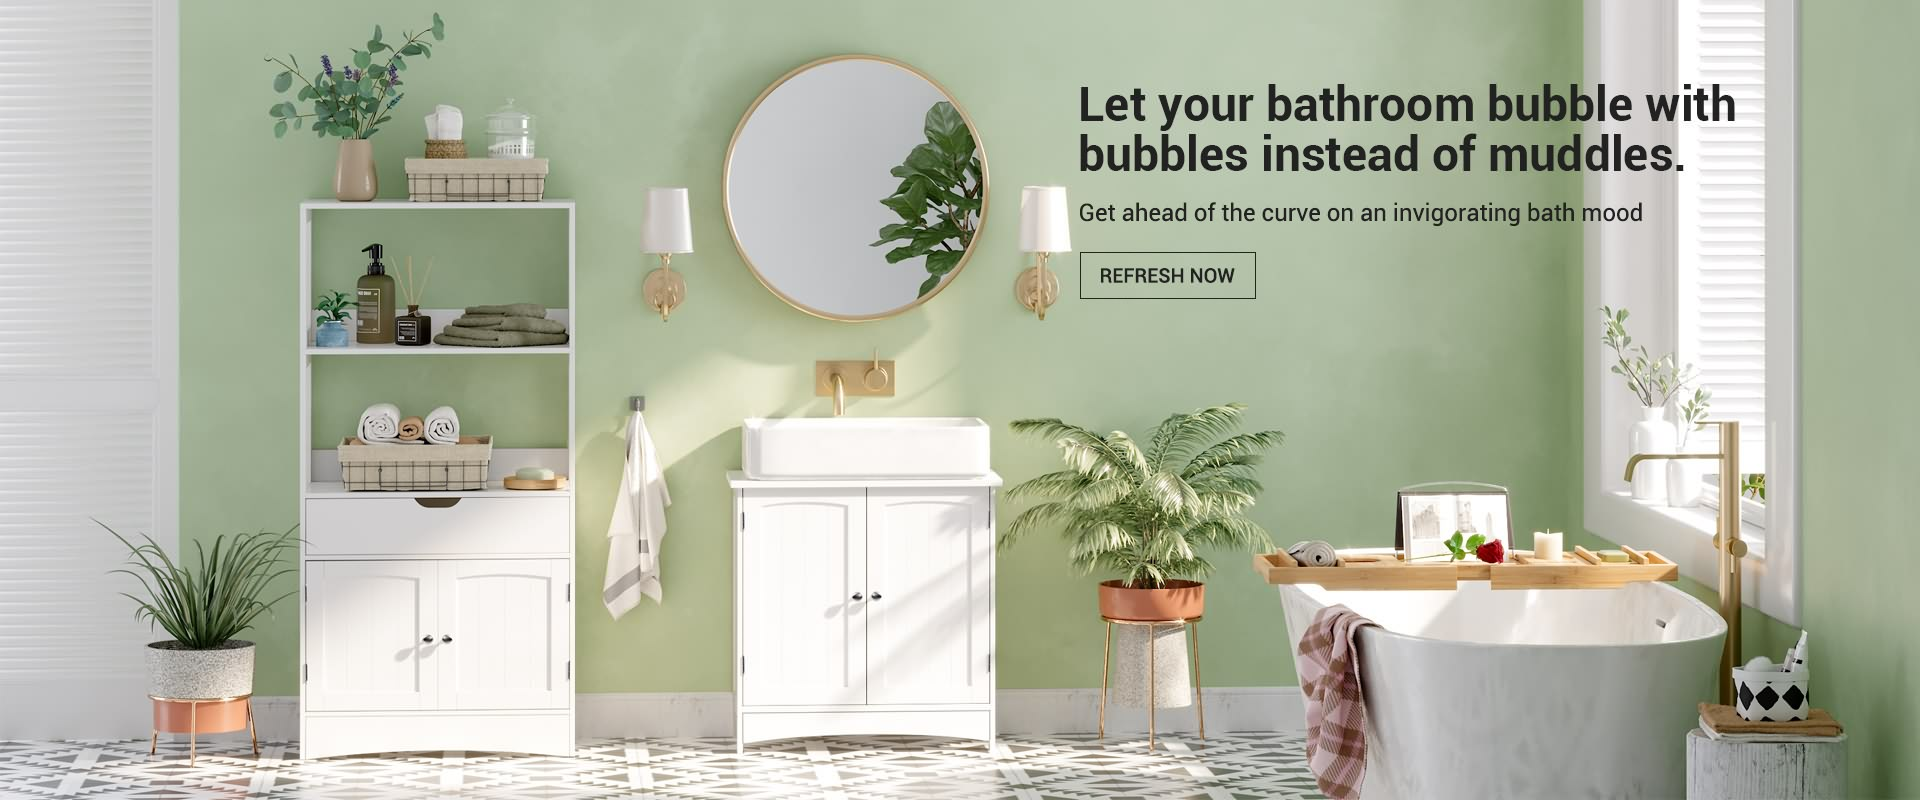 Let your bathroom bubble with joy and comfort